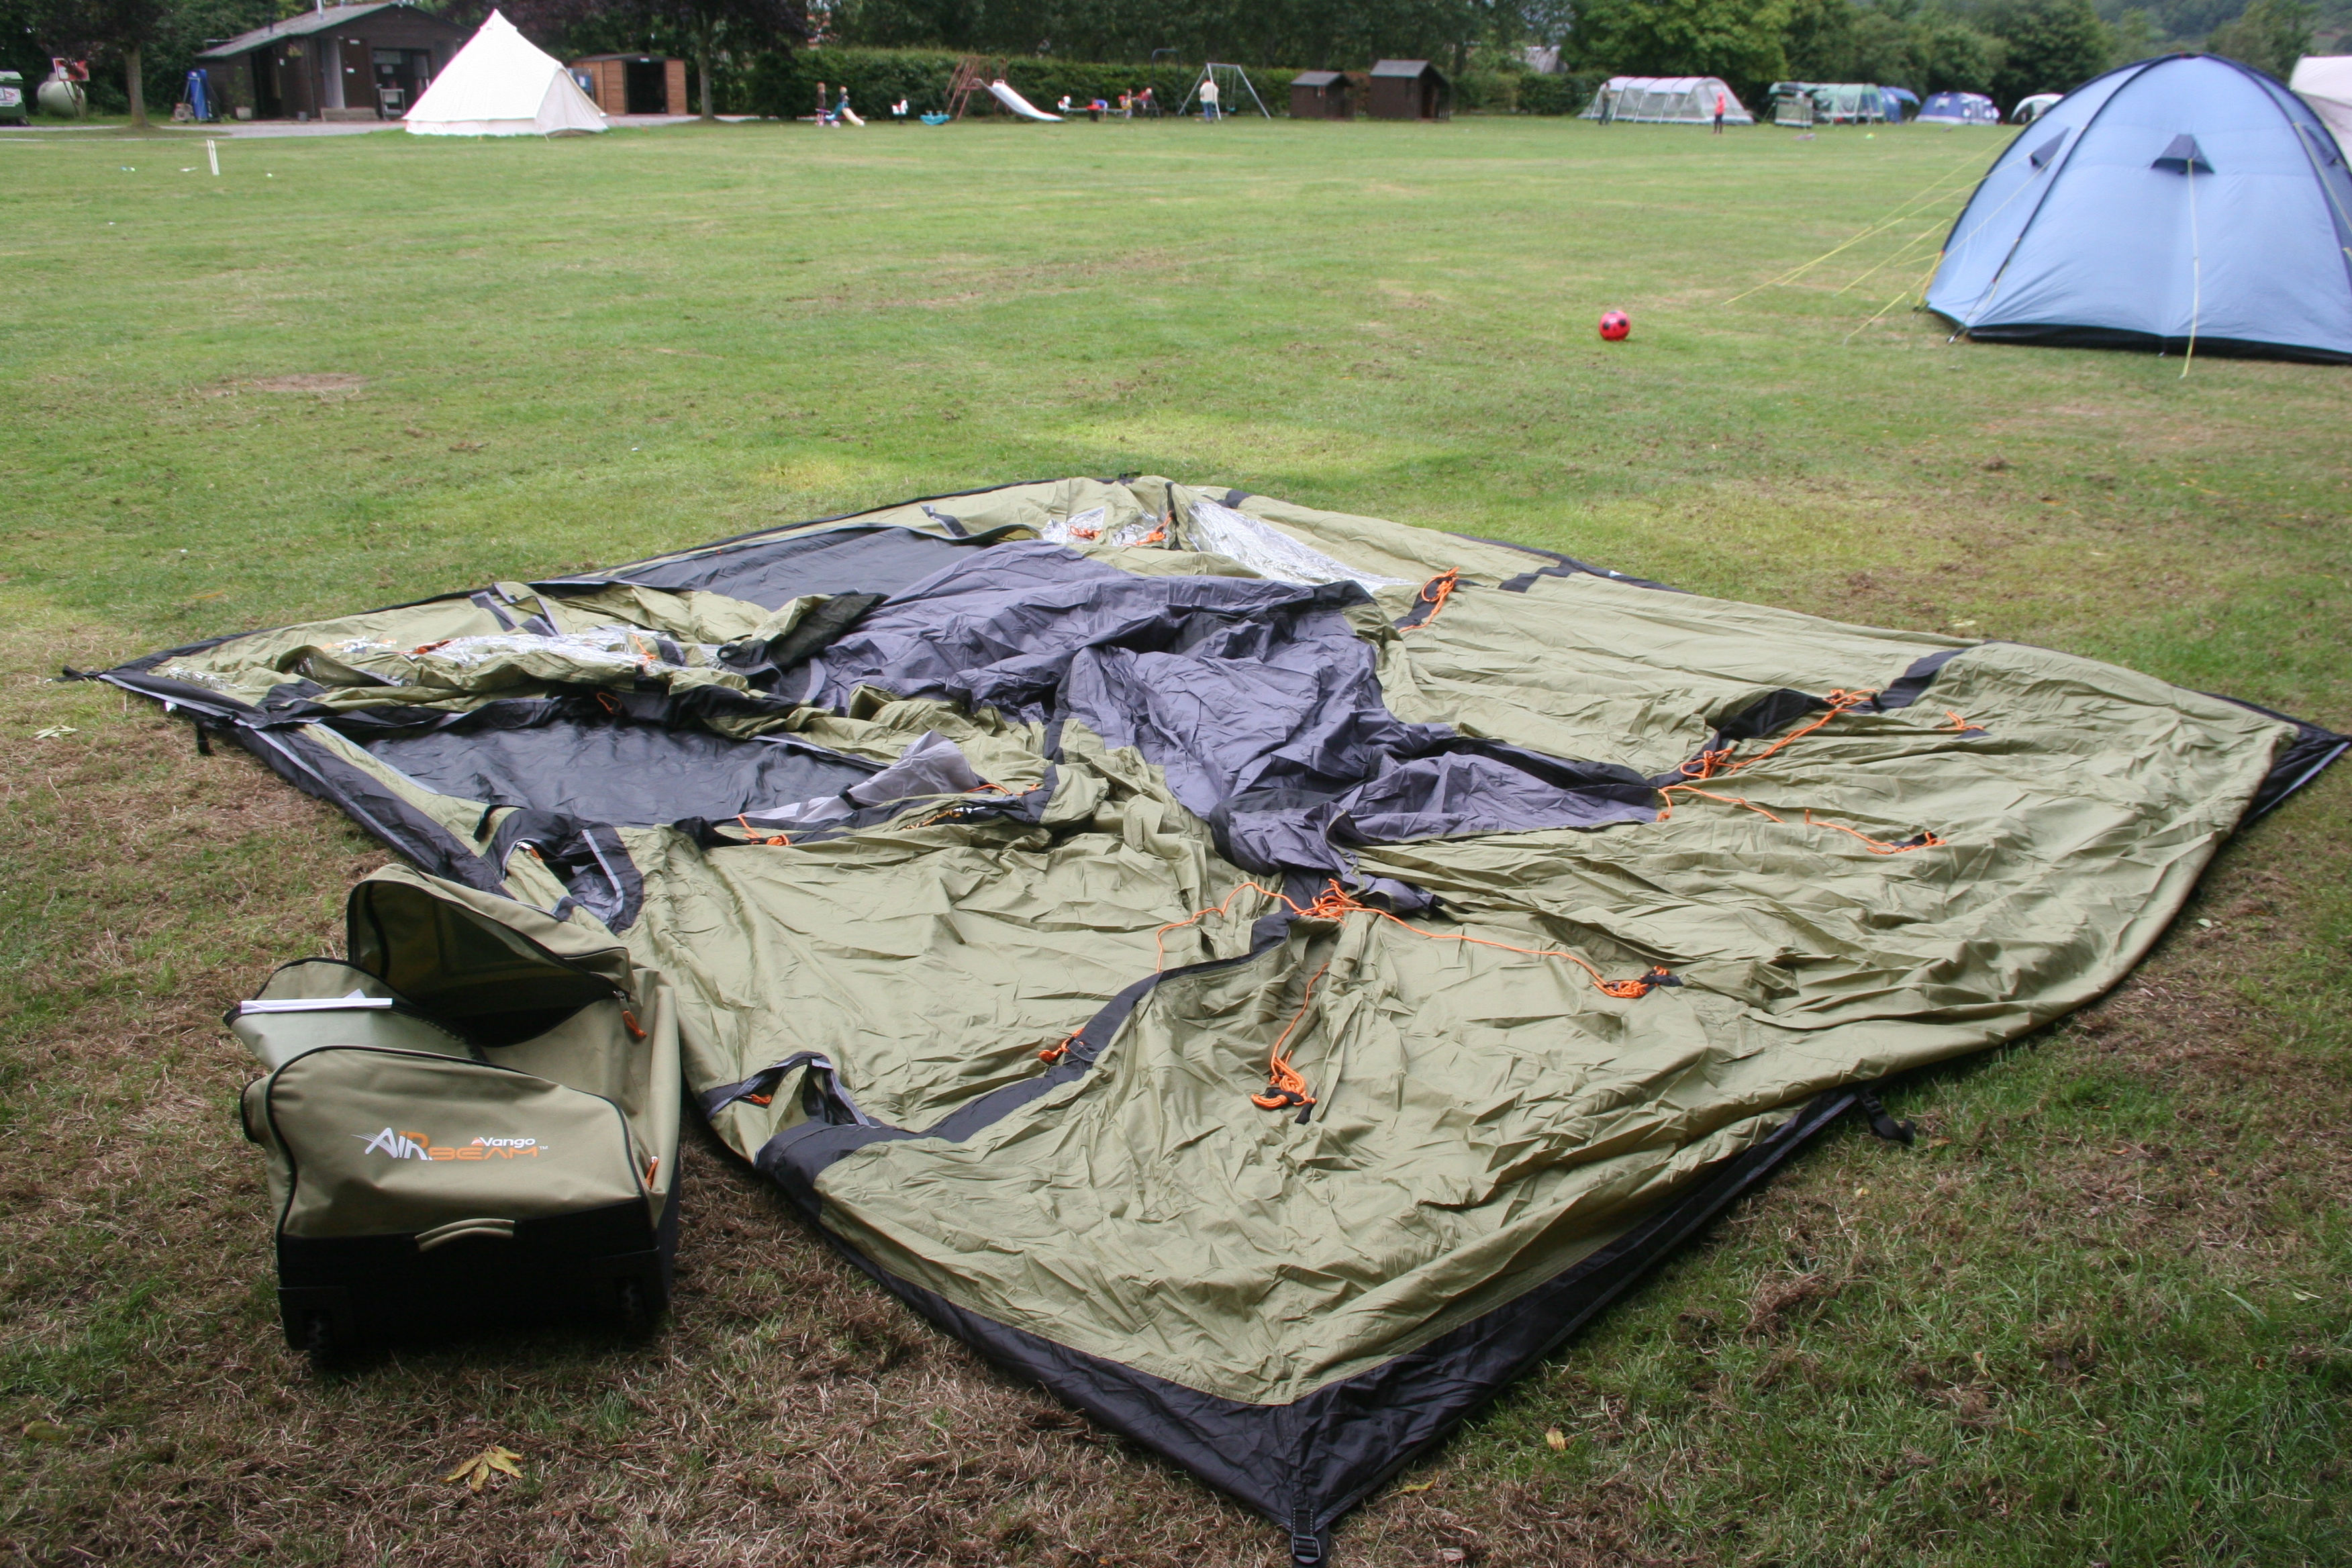 Image & Road Test - Vango Airbeam Kinetic 600 Tent - Globalmouse Travels